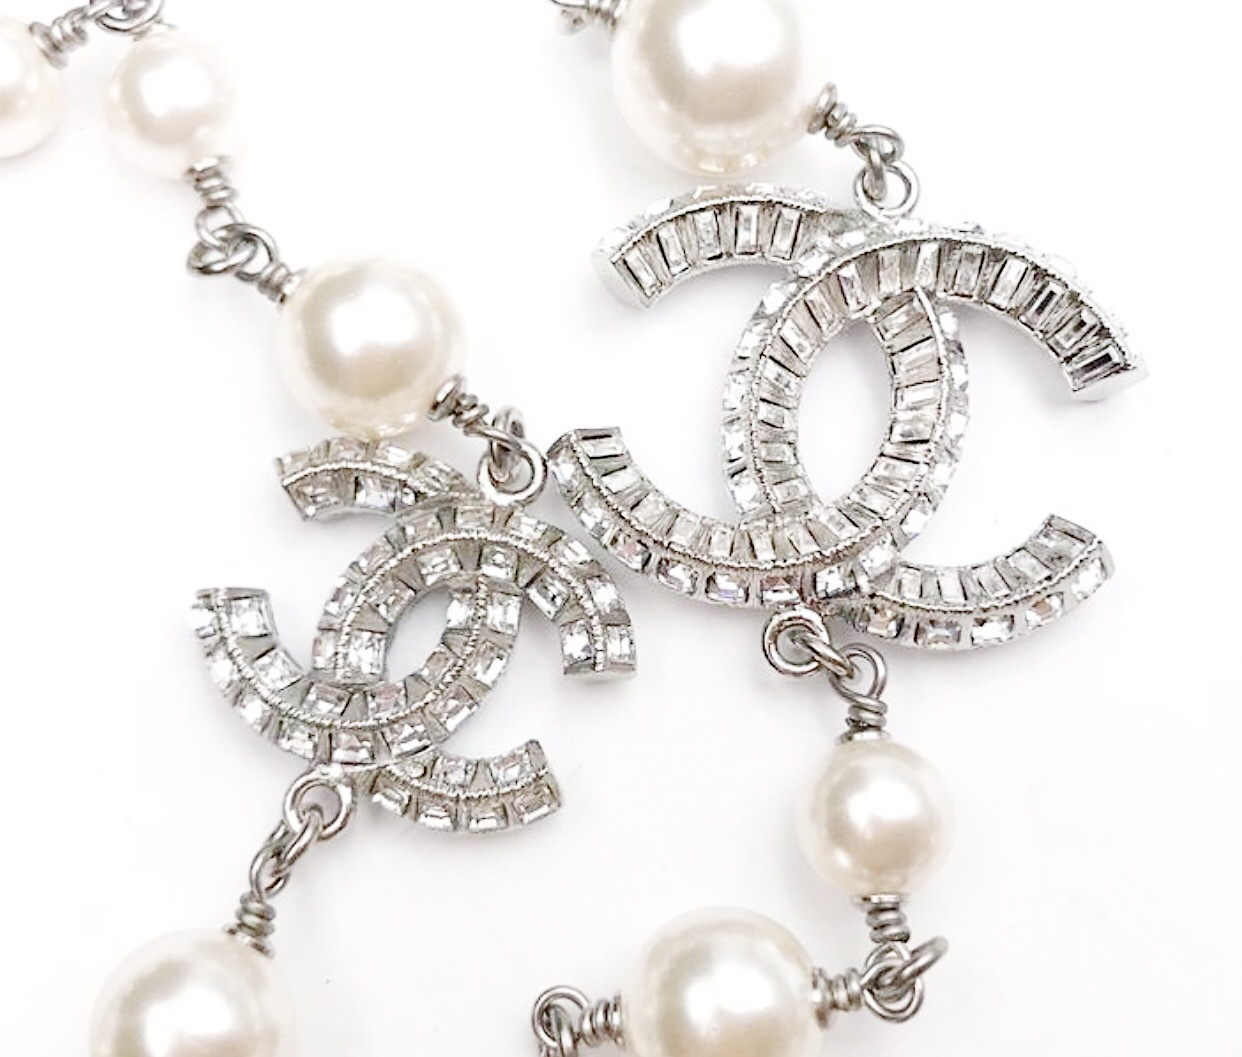 Authentic Chanel Crystal Baguette CC Long Pearl Beaded Necklace Silver